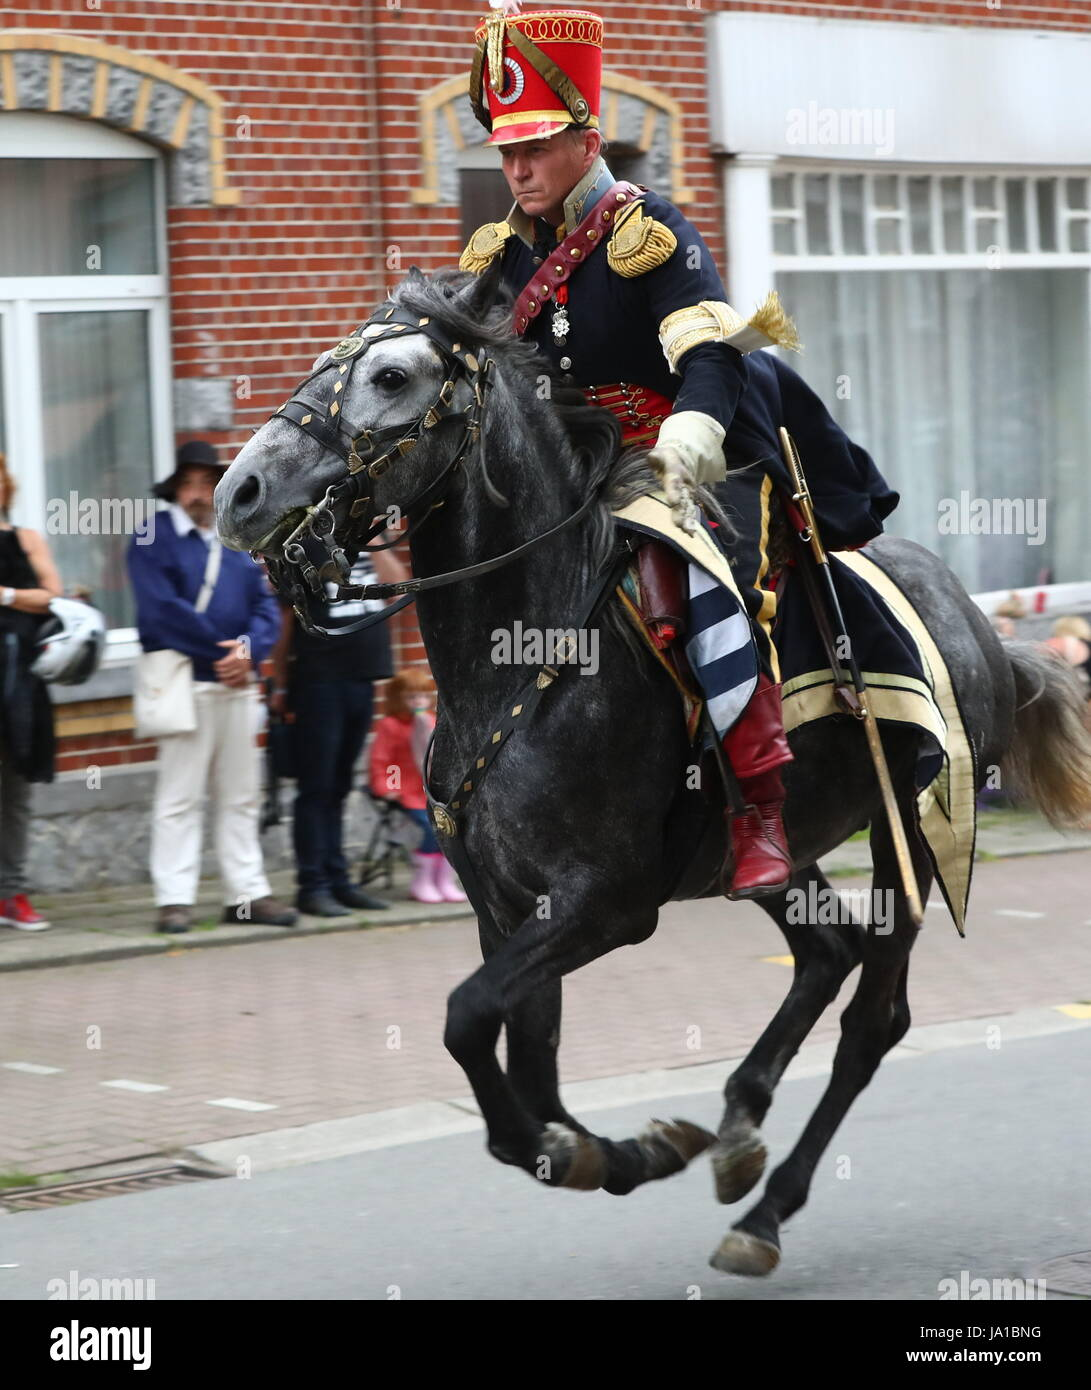 Ligny, Belgium. 3rd June, 2017. A participant rides a horse during the re-enactment of the Battle of Ligny, in Ligny, - Stock Image